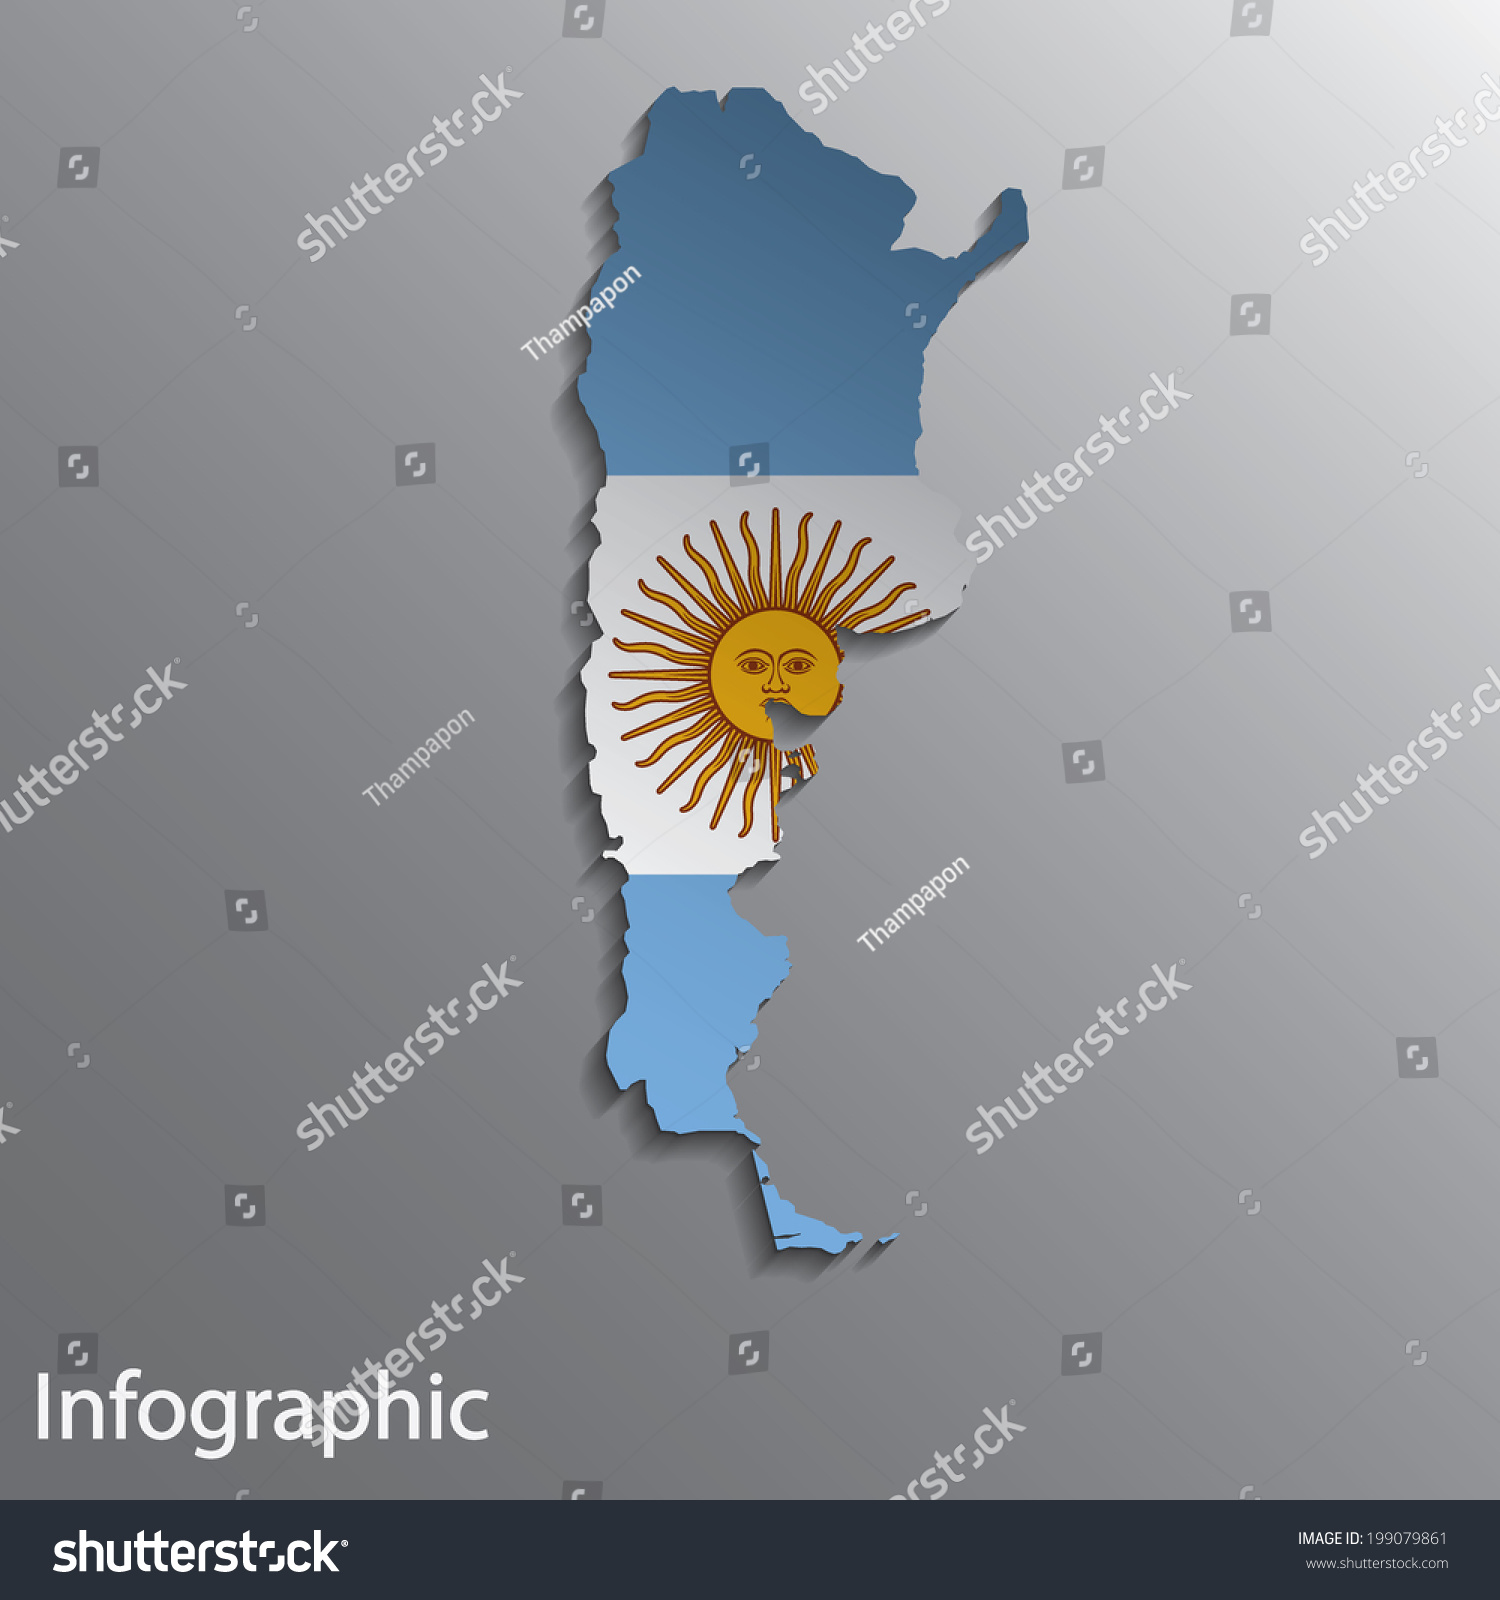 Cartoon Map Of Argentina Vector Northlake Mall Map Map Of Knoxville Tn - Argentina 3d map